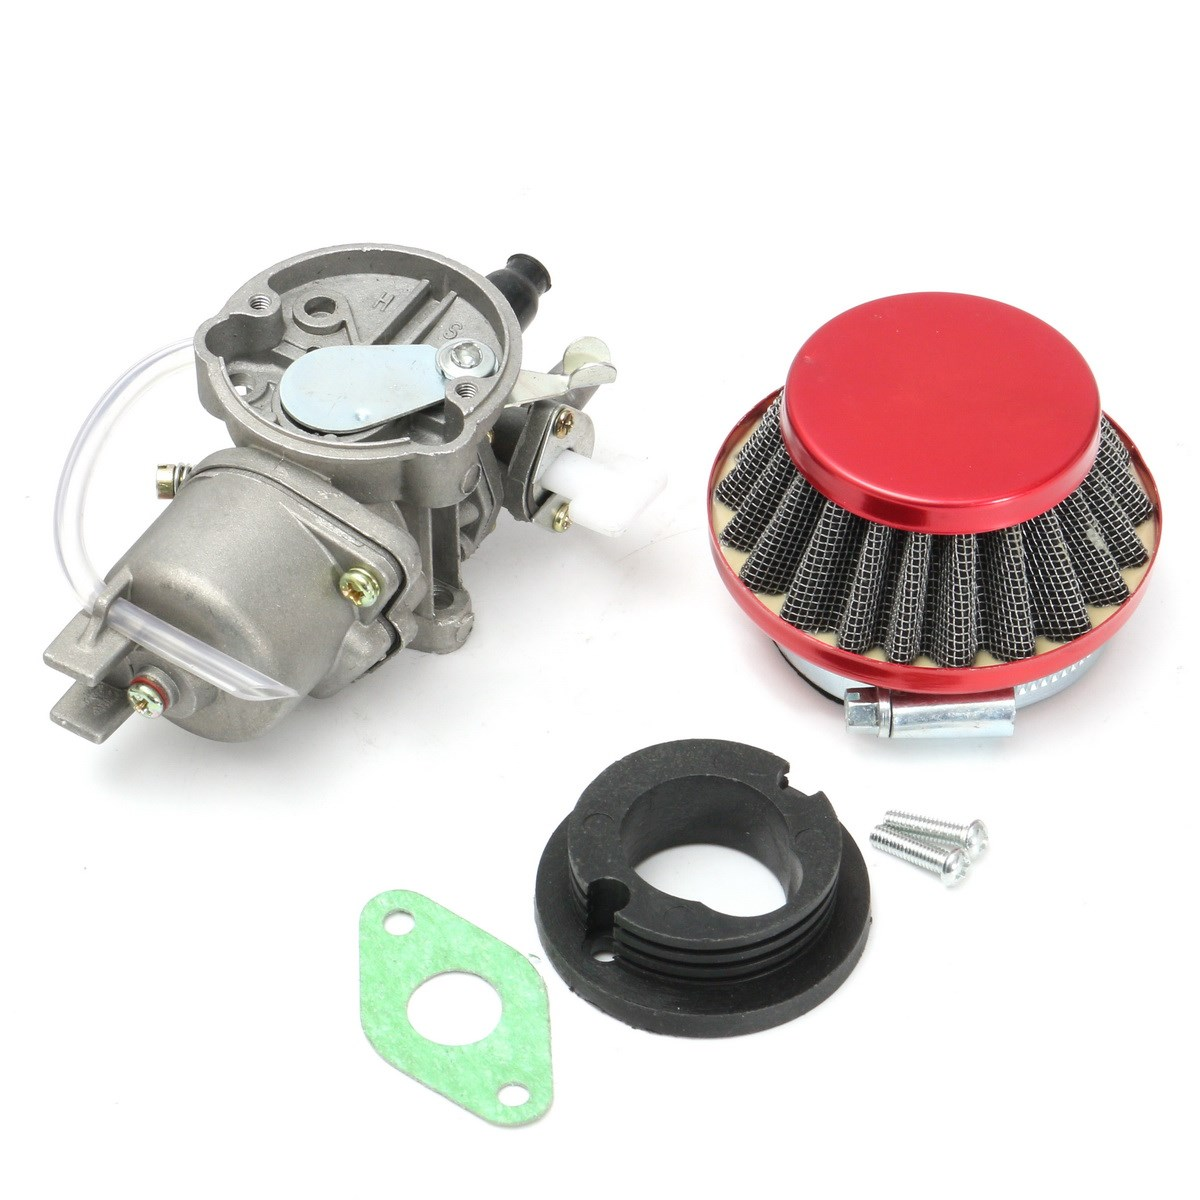 Carburetor Carb Air Filter Assembly For 43cc 47cc 49cc Mini Moto ATV Dirt for Pocket Bike Metal Red 2 stroke ignition coil for 33cc 43cc 47cc 49cc 50cc pocket dirt bike atv scooter